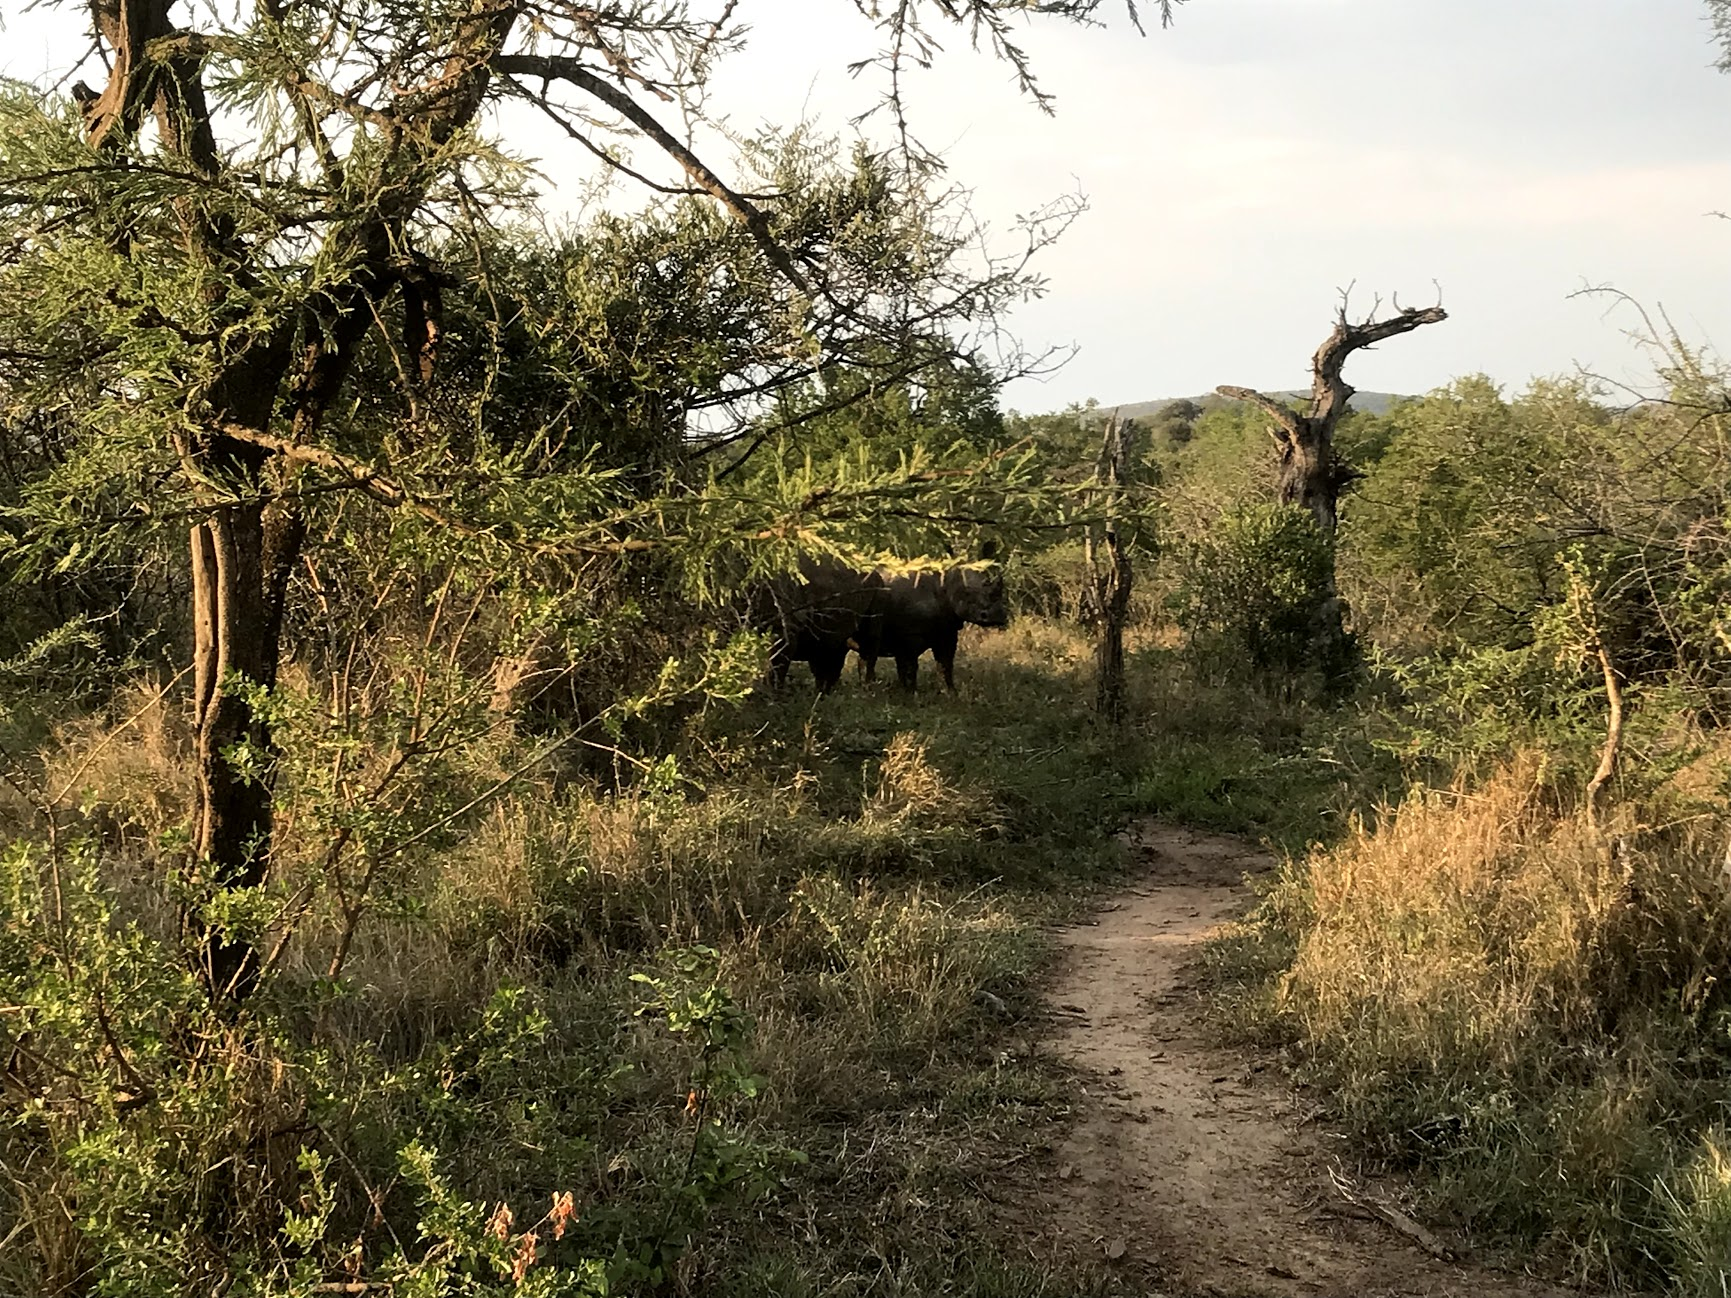 Rhinos approaching from the bush